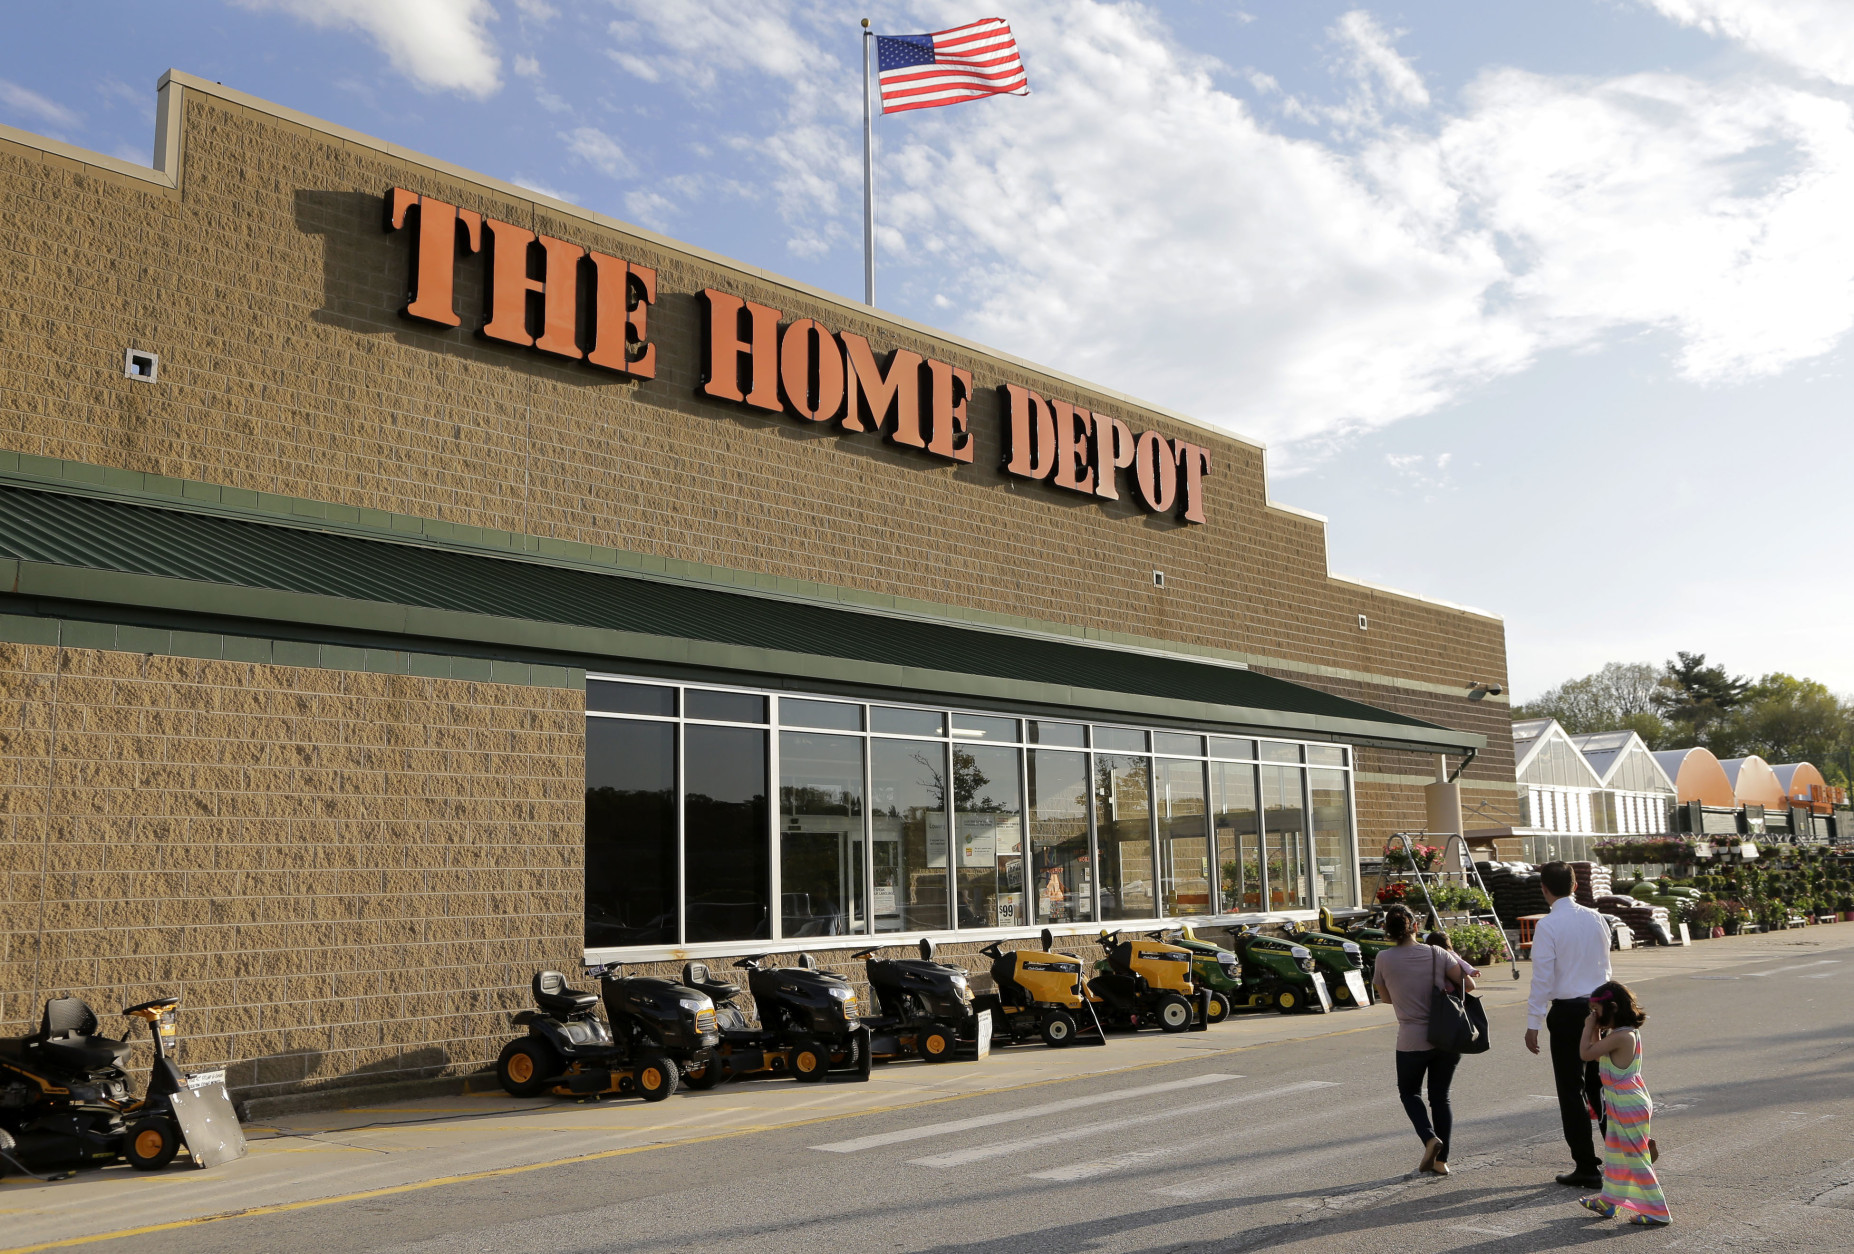 In this Wednesday, May 18, 2016, photo, people approach an entrance to a Home Depot store location in Bellingham, Mass. Home Depot reports financial results Tuesday, Aug. 16, 2016. (AP Photo/Steven Senne)